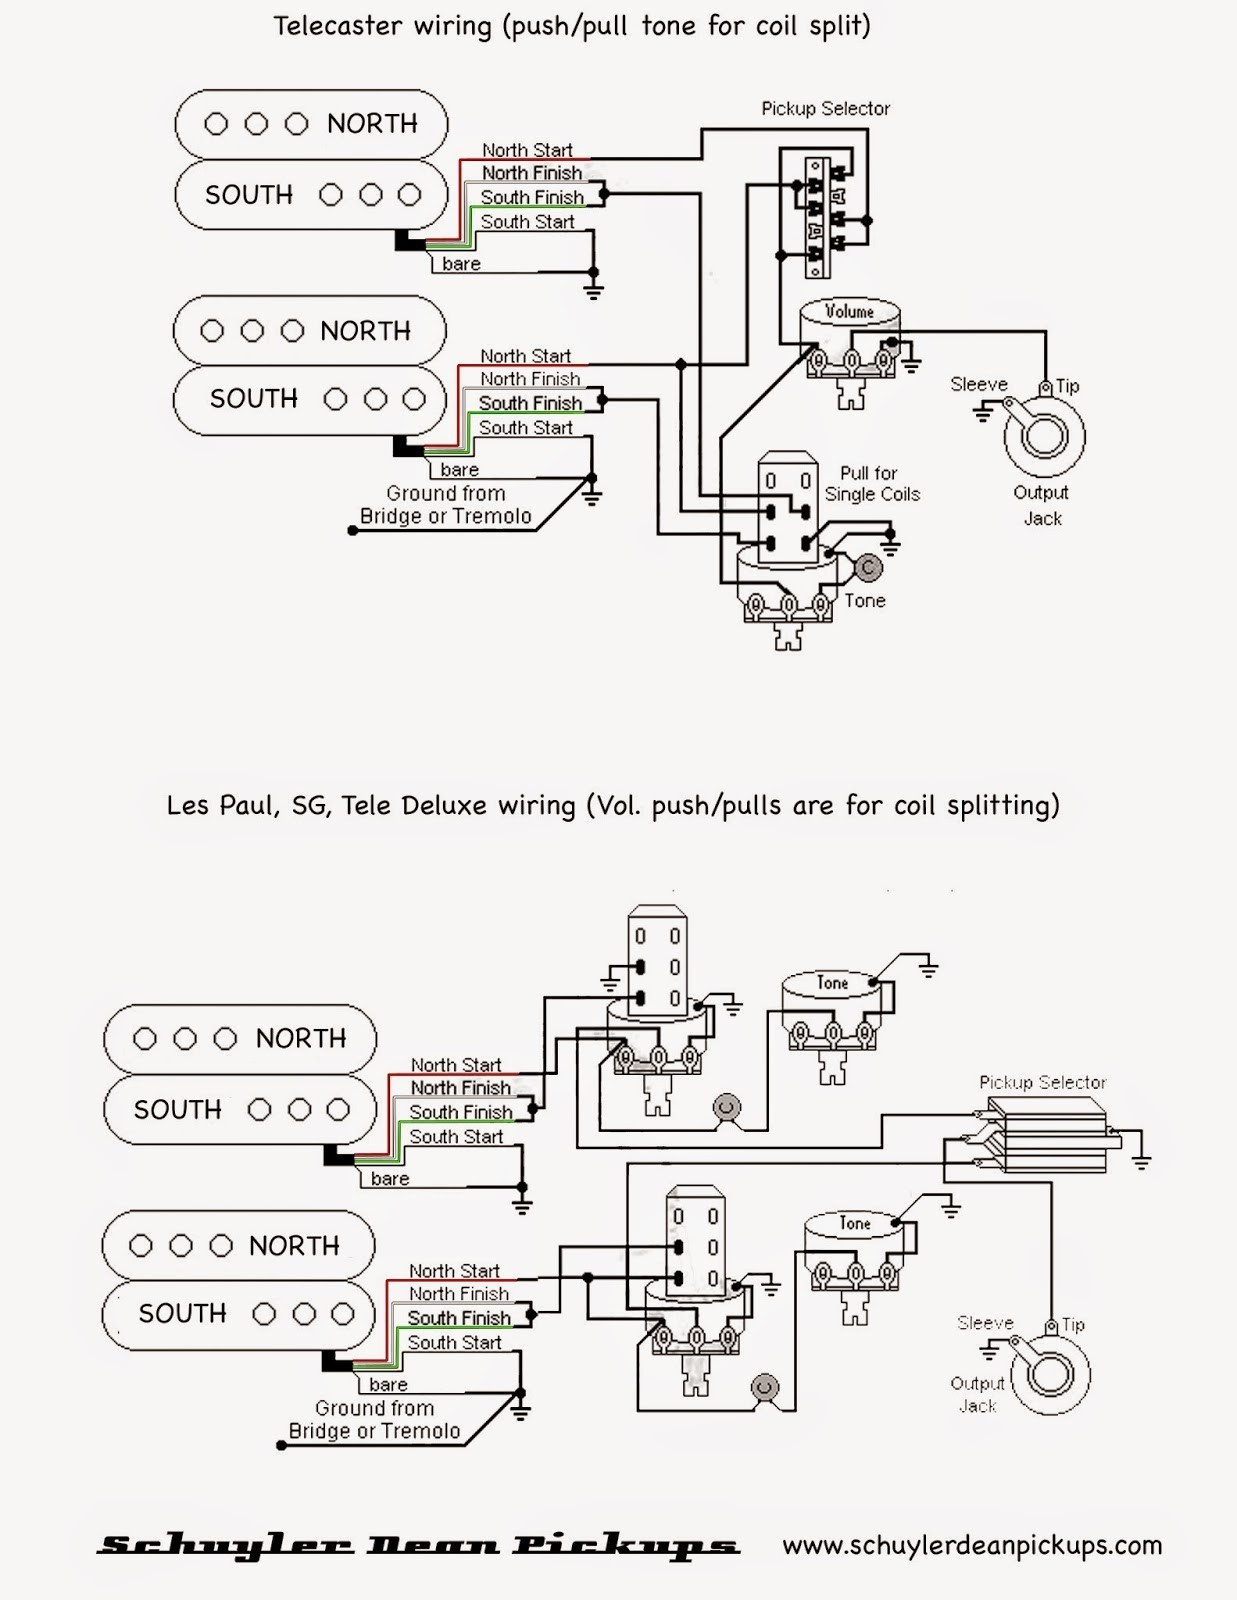 wiring diagram les paul preview wiring diagram Les Paul Switch Wiring Diagram